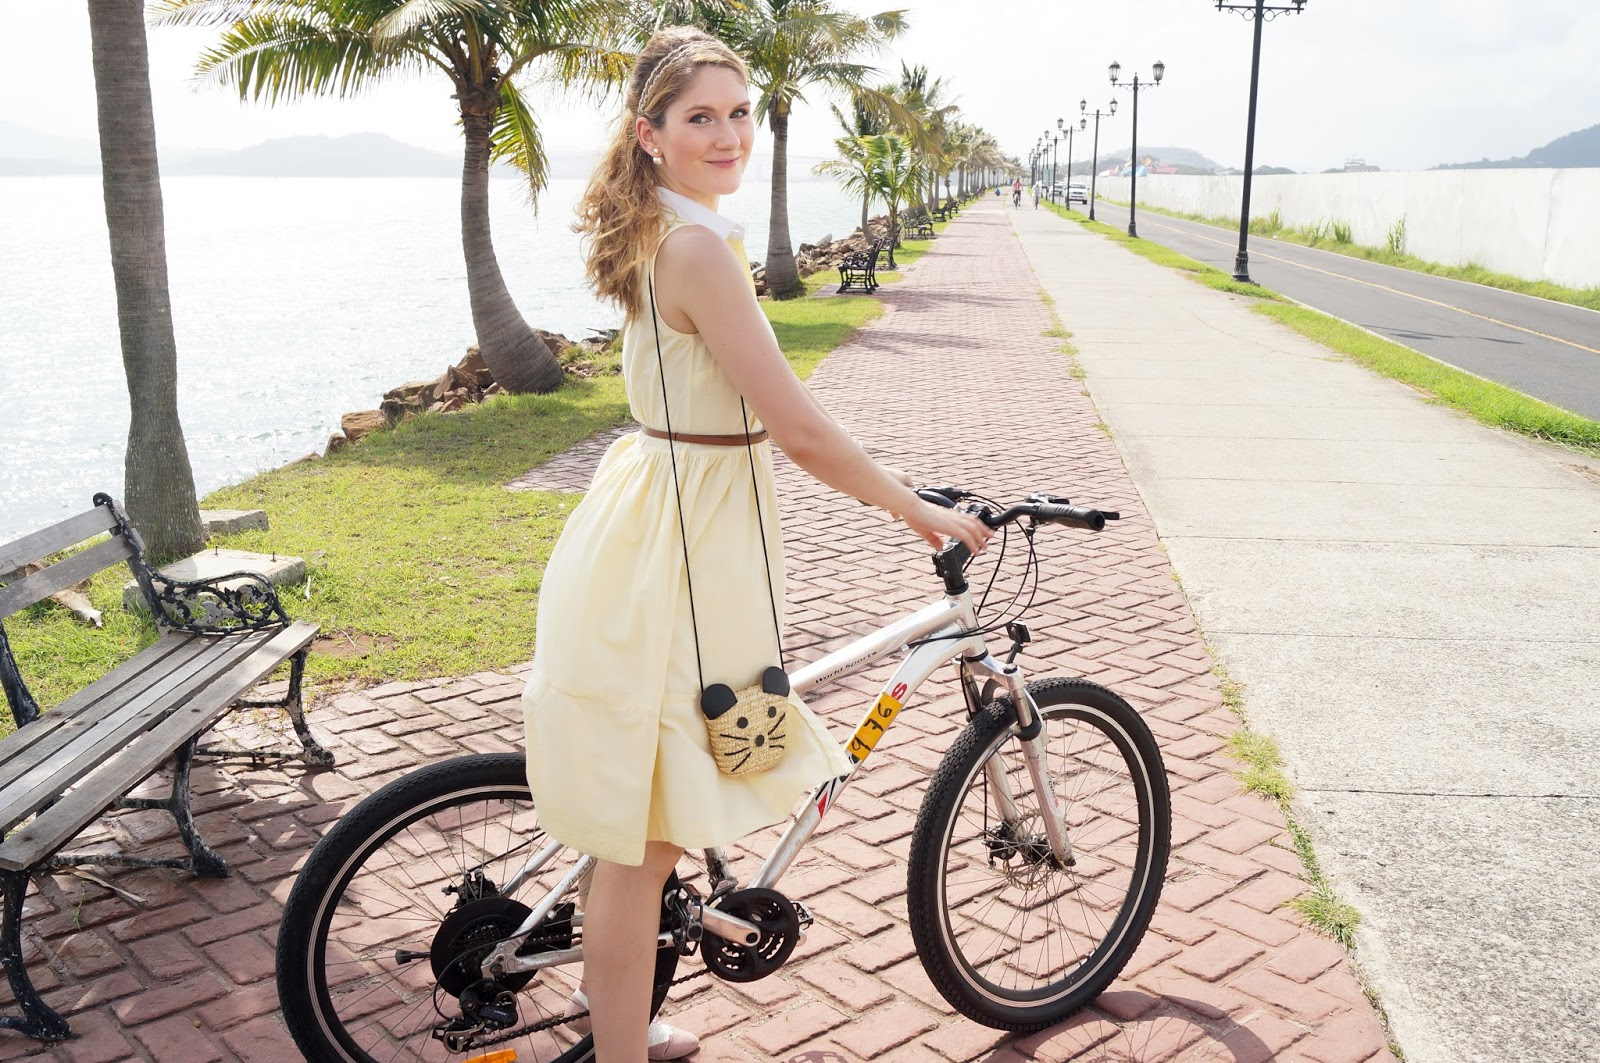 This retro outfit is perfect for a Summer bike riding date!